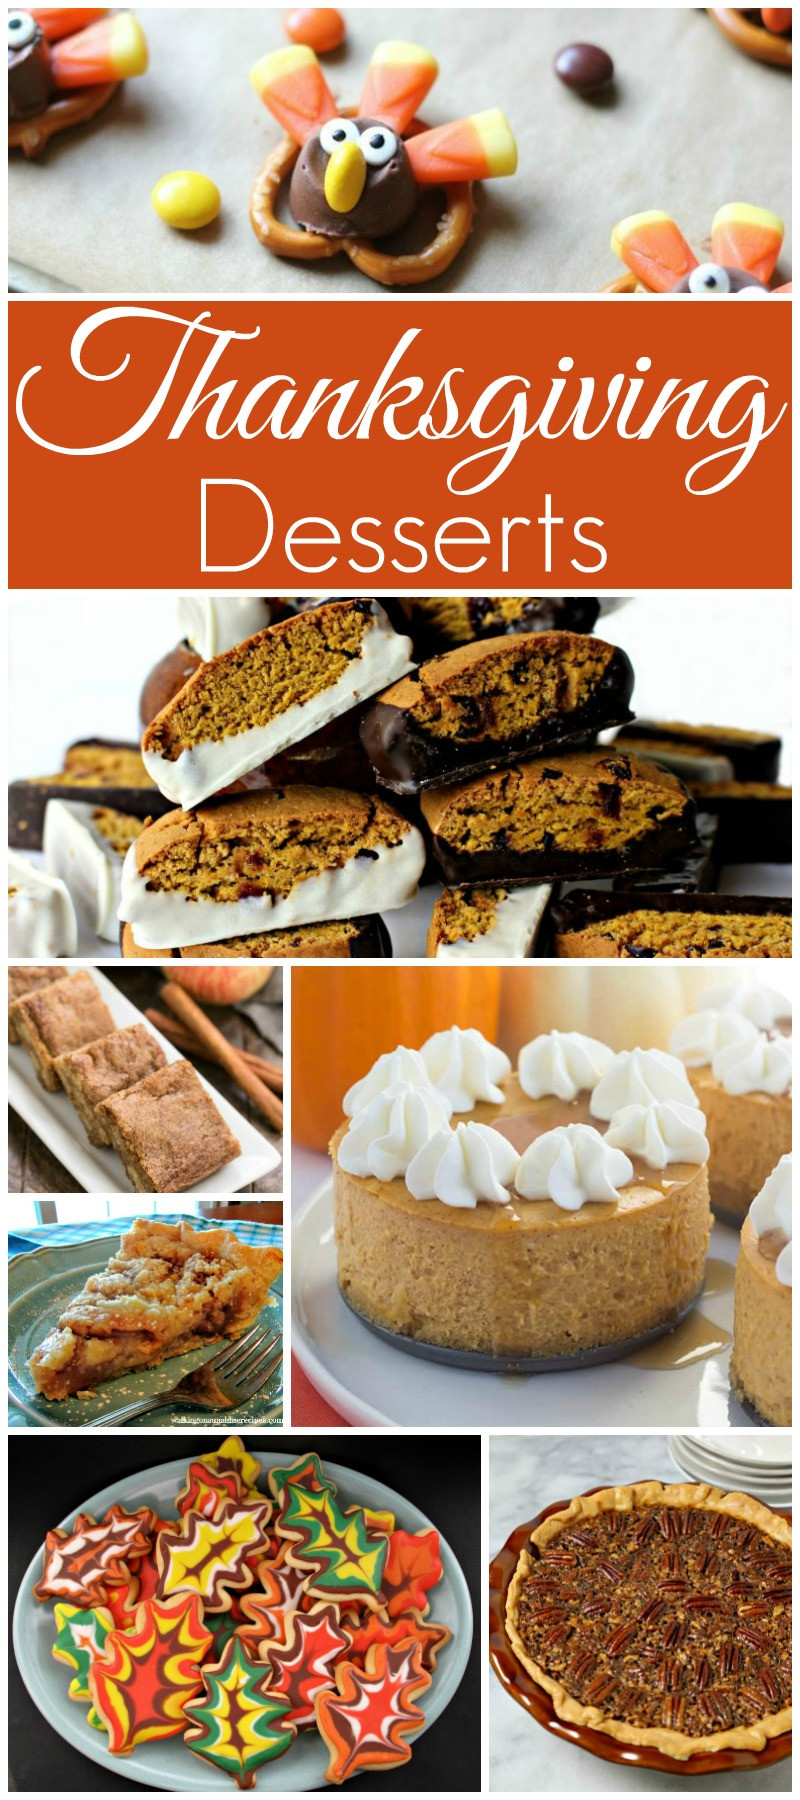 Thanksgiving Desserts Ideas  Thanksgiving Desserts and our Delicious Dishes Recipe Party